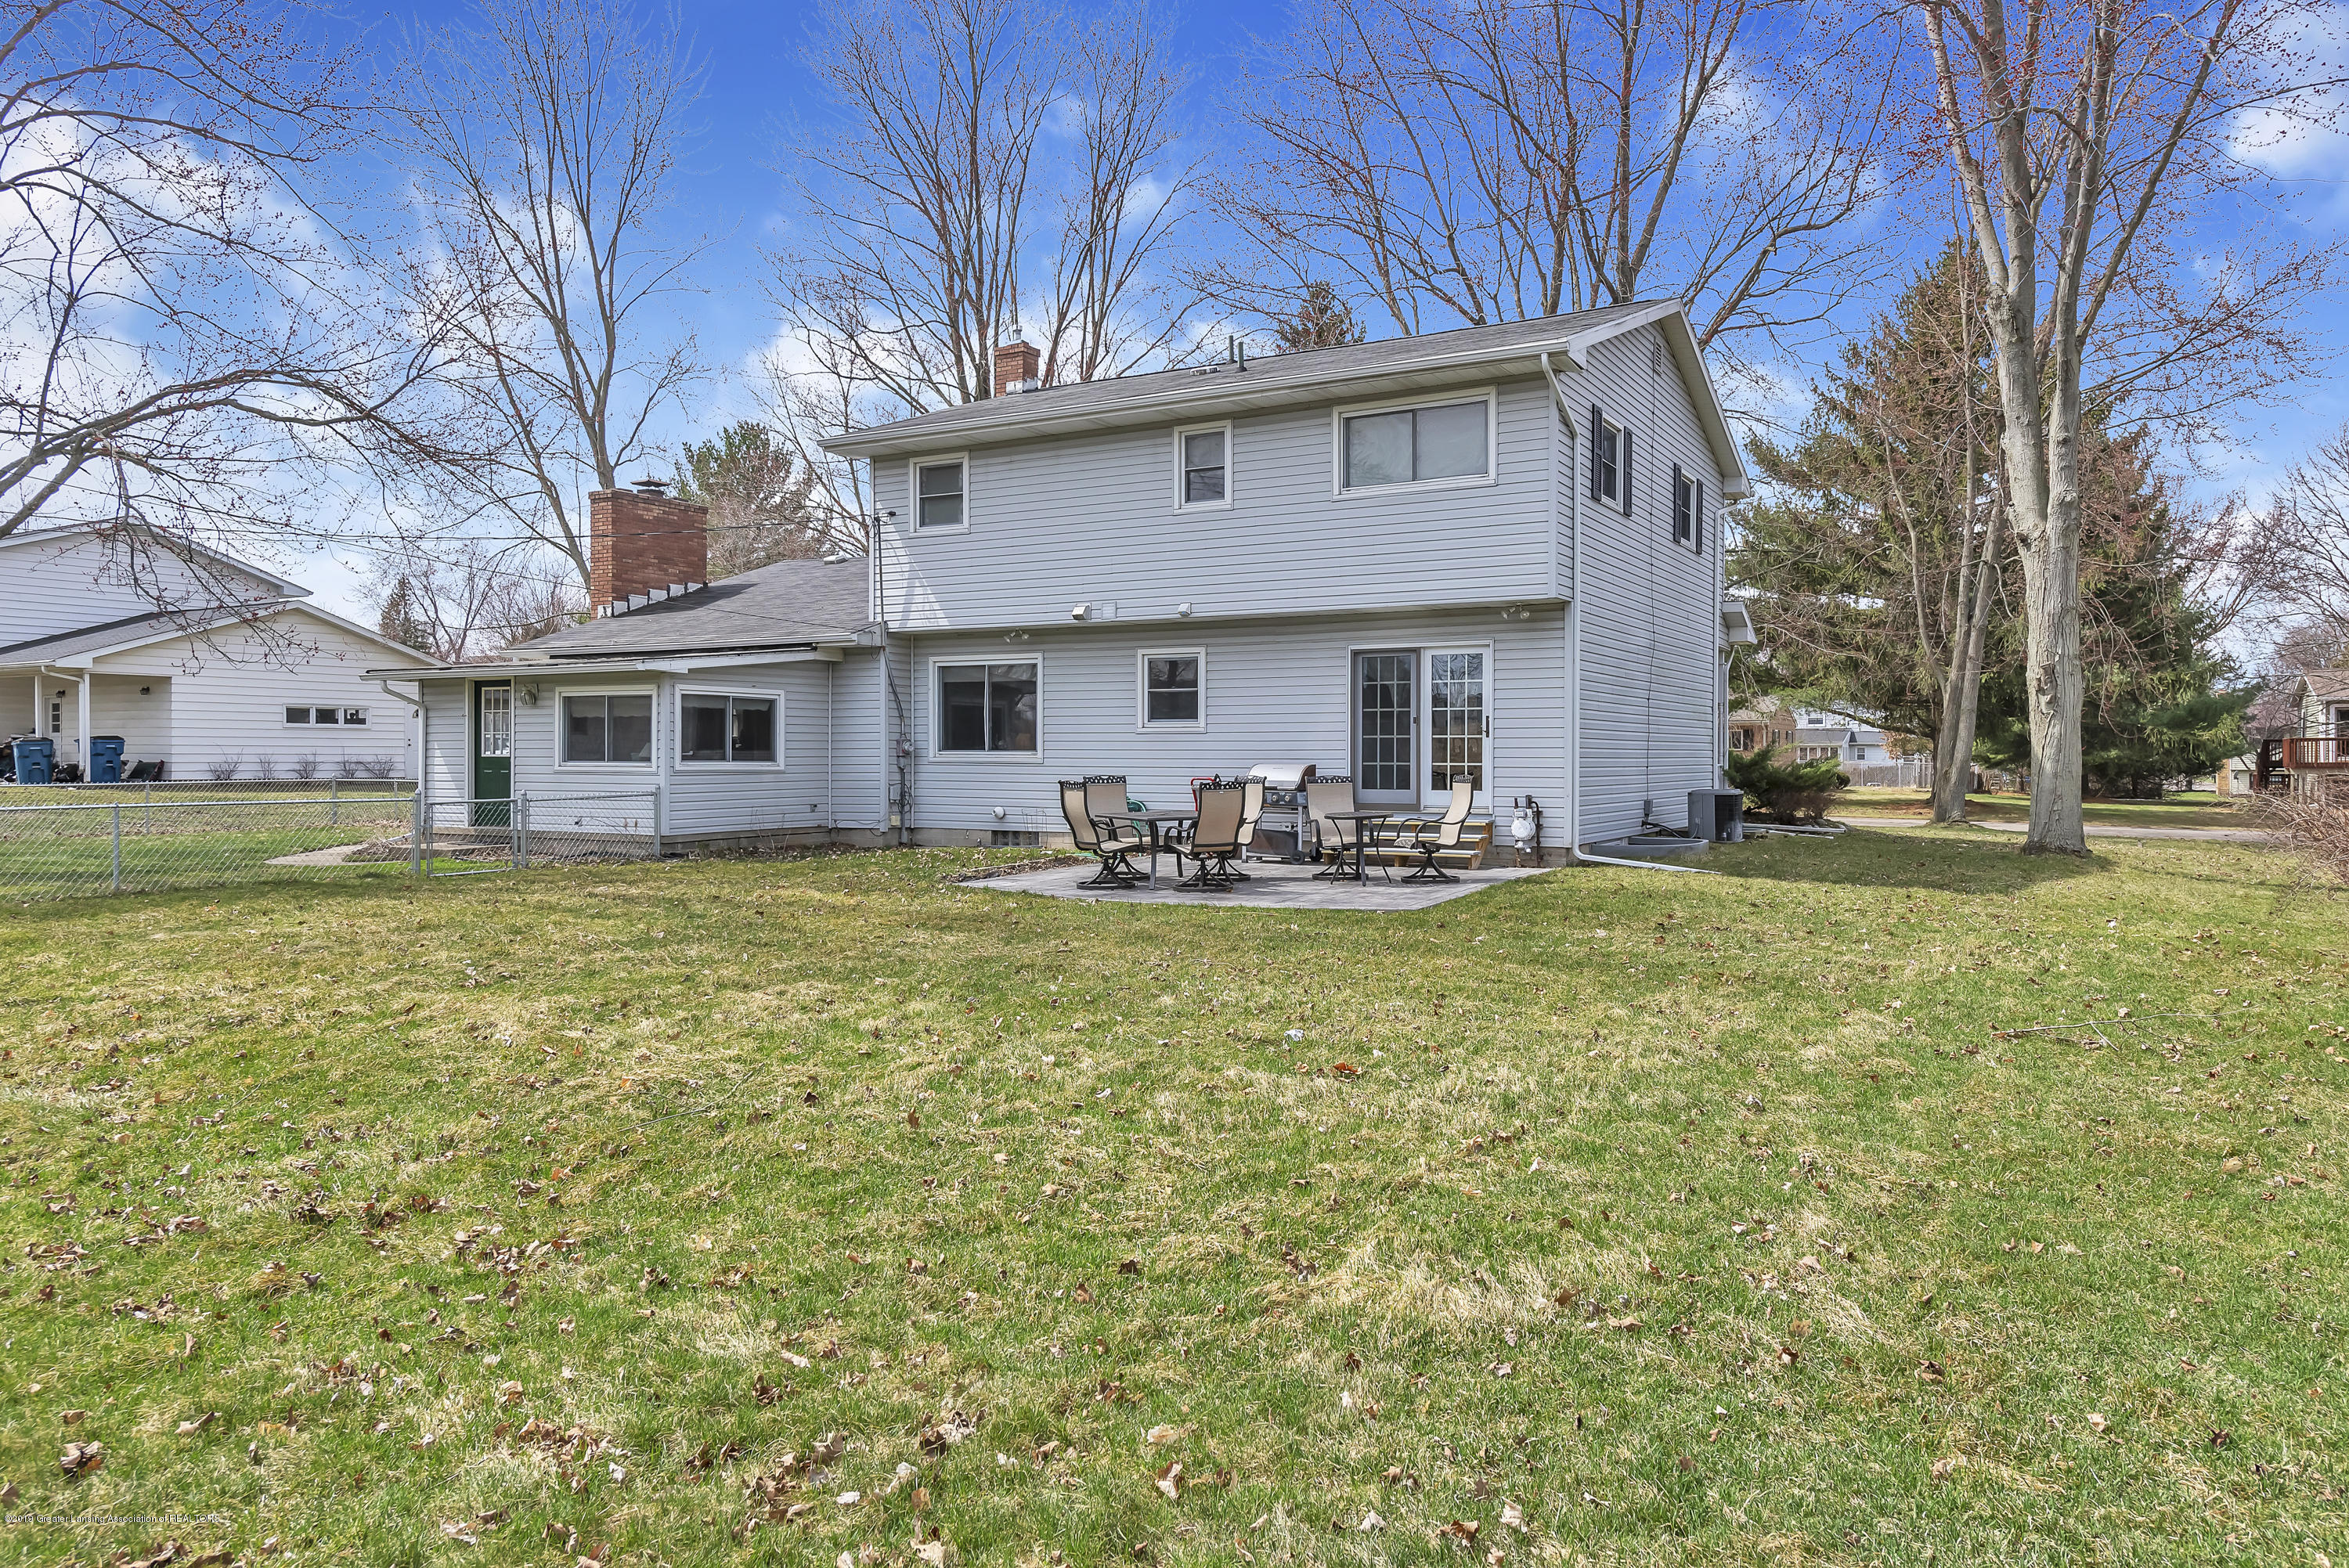 601 Raeburn Rd - 601-Raeburn-Road-Eaton-Rapids-Michigan-w - 43